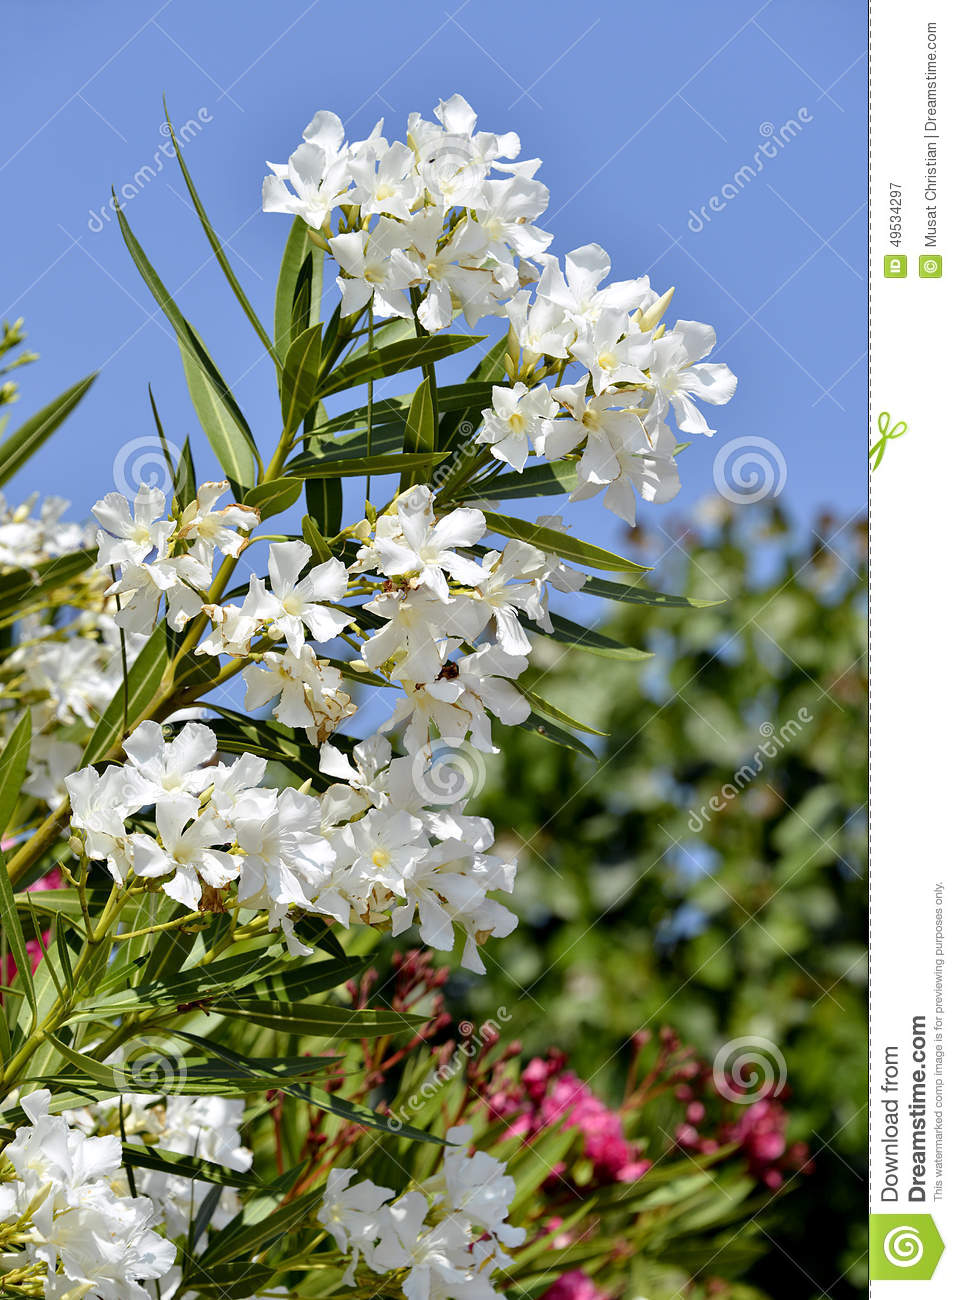 White oleander flowers stock image image of season petal 49534297 download white oleander flowers stock image image of season petal 49534297 mightylinksfo